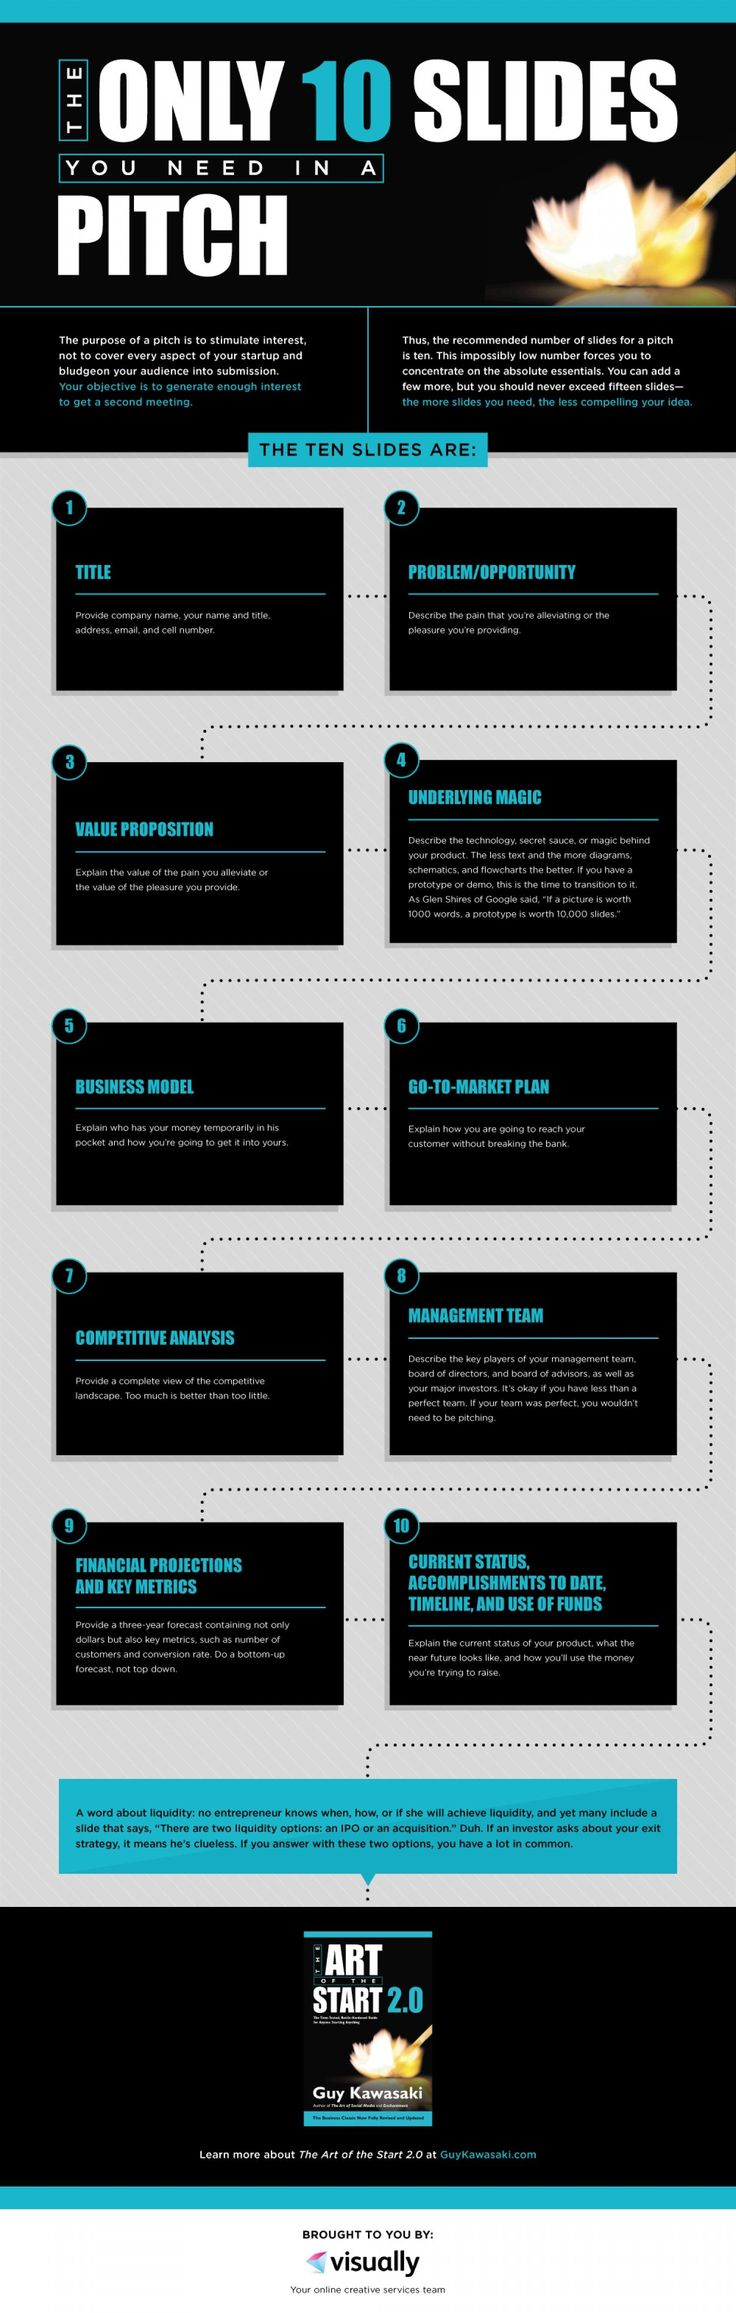 The Only 10 Slides Needed When Pitching Your Business (Infographic)